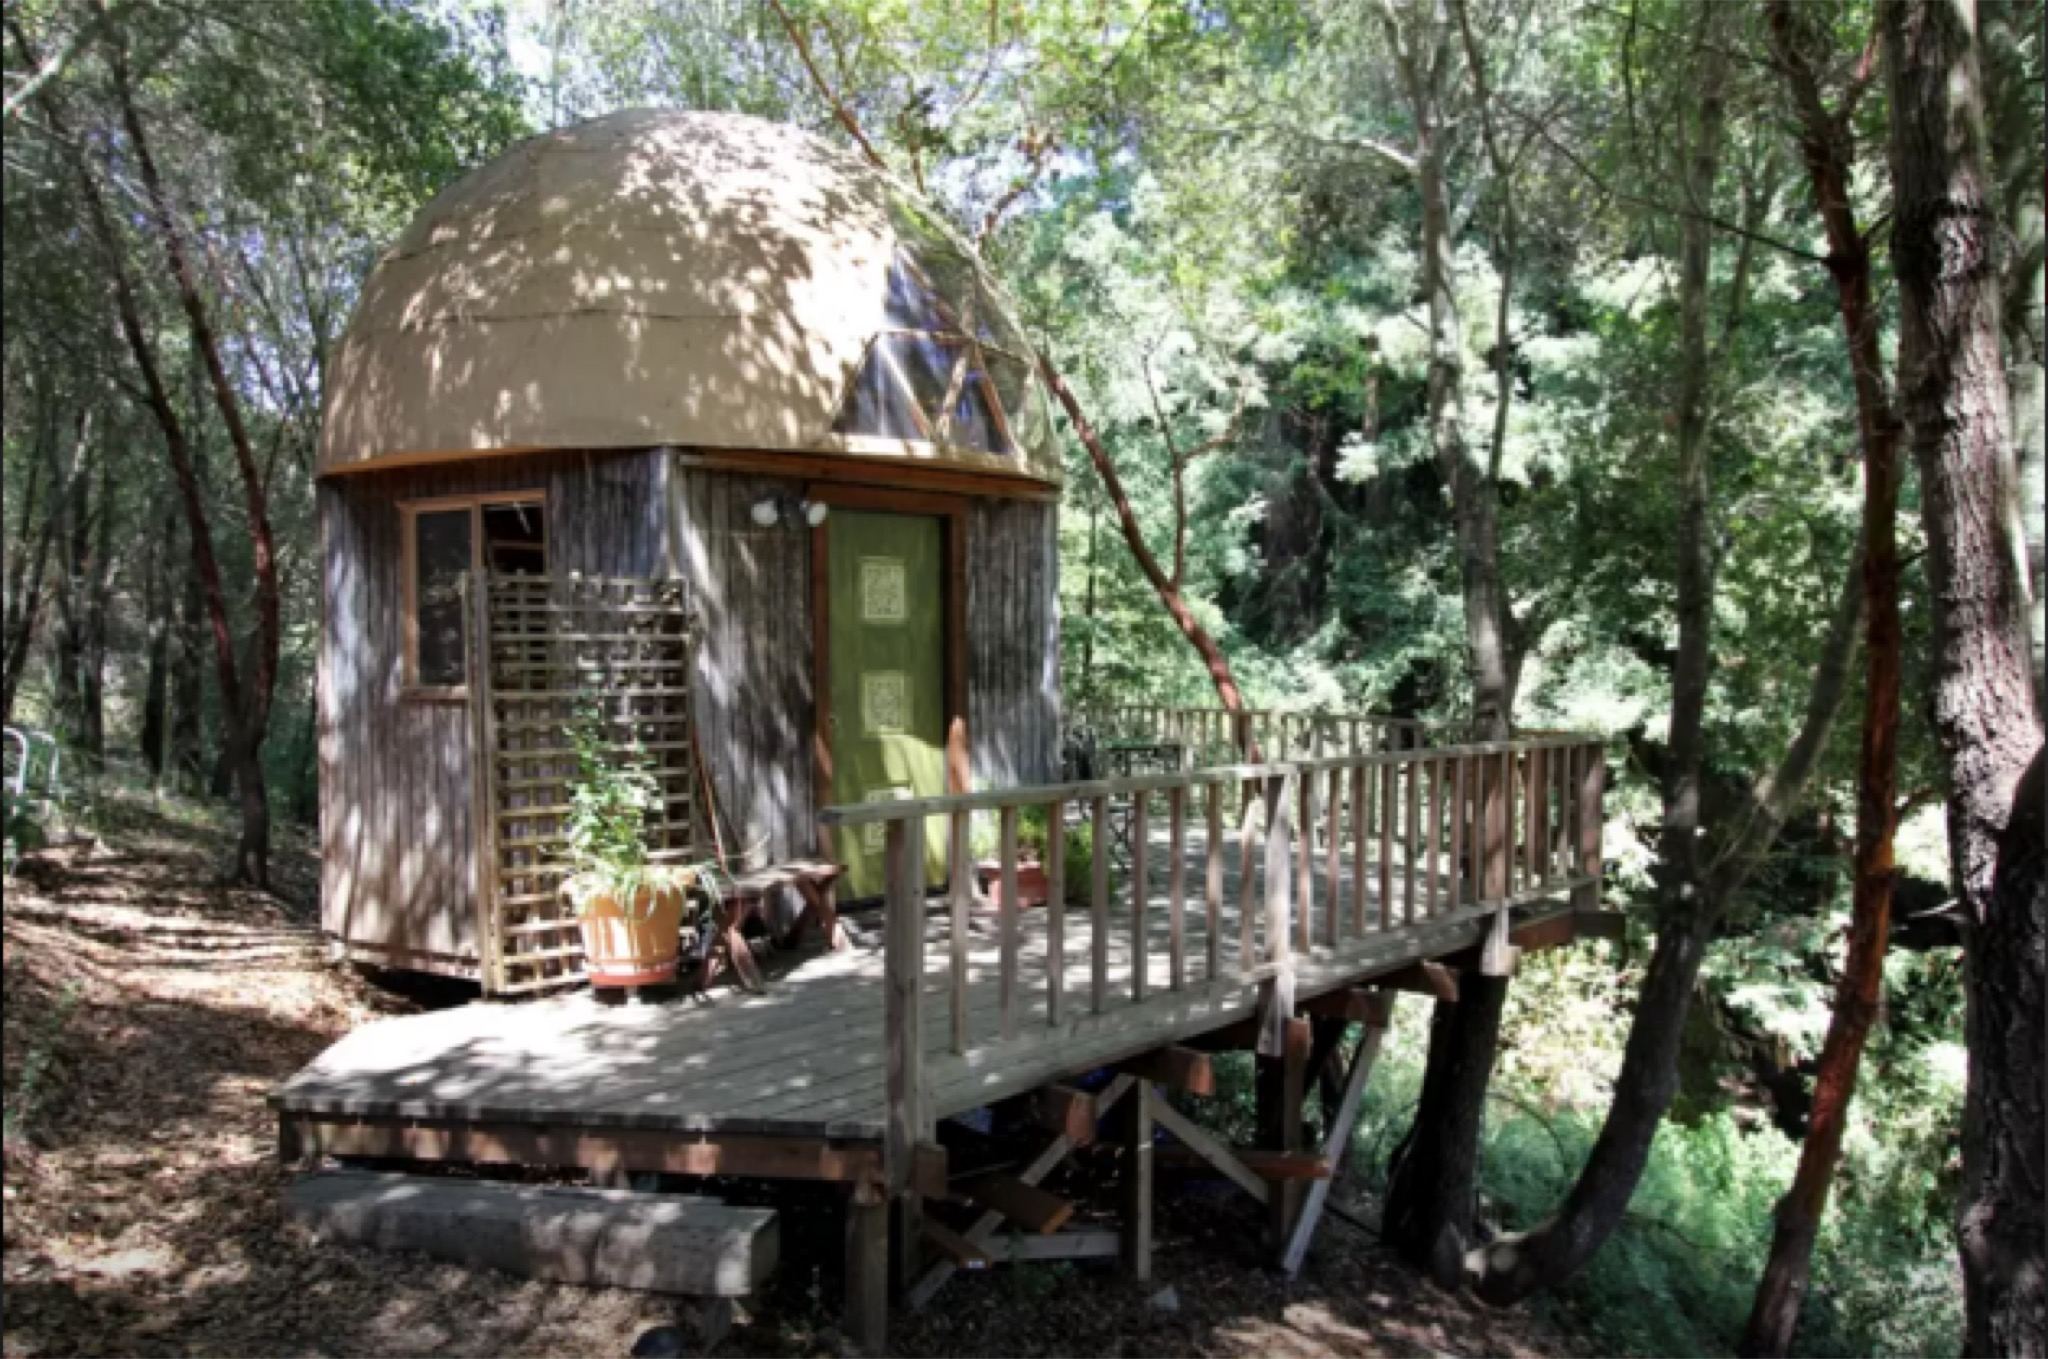 Mushroom Cabin Outside Santa Cruz Is Most Popular Airbnb In The World